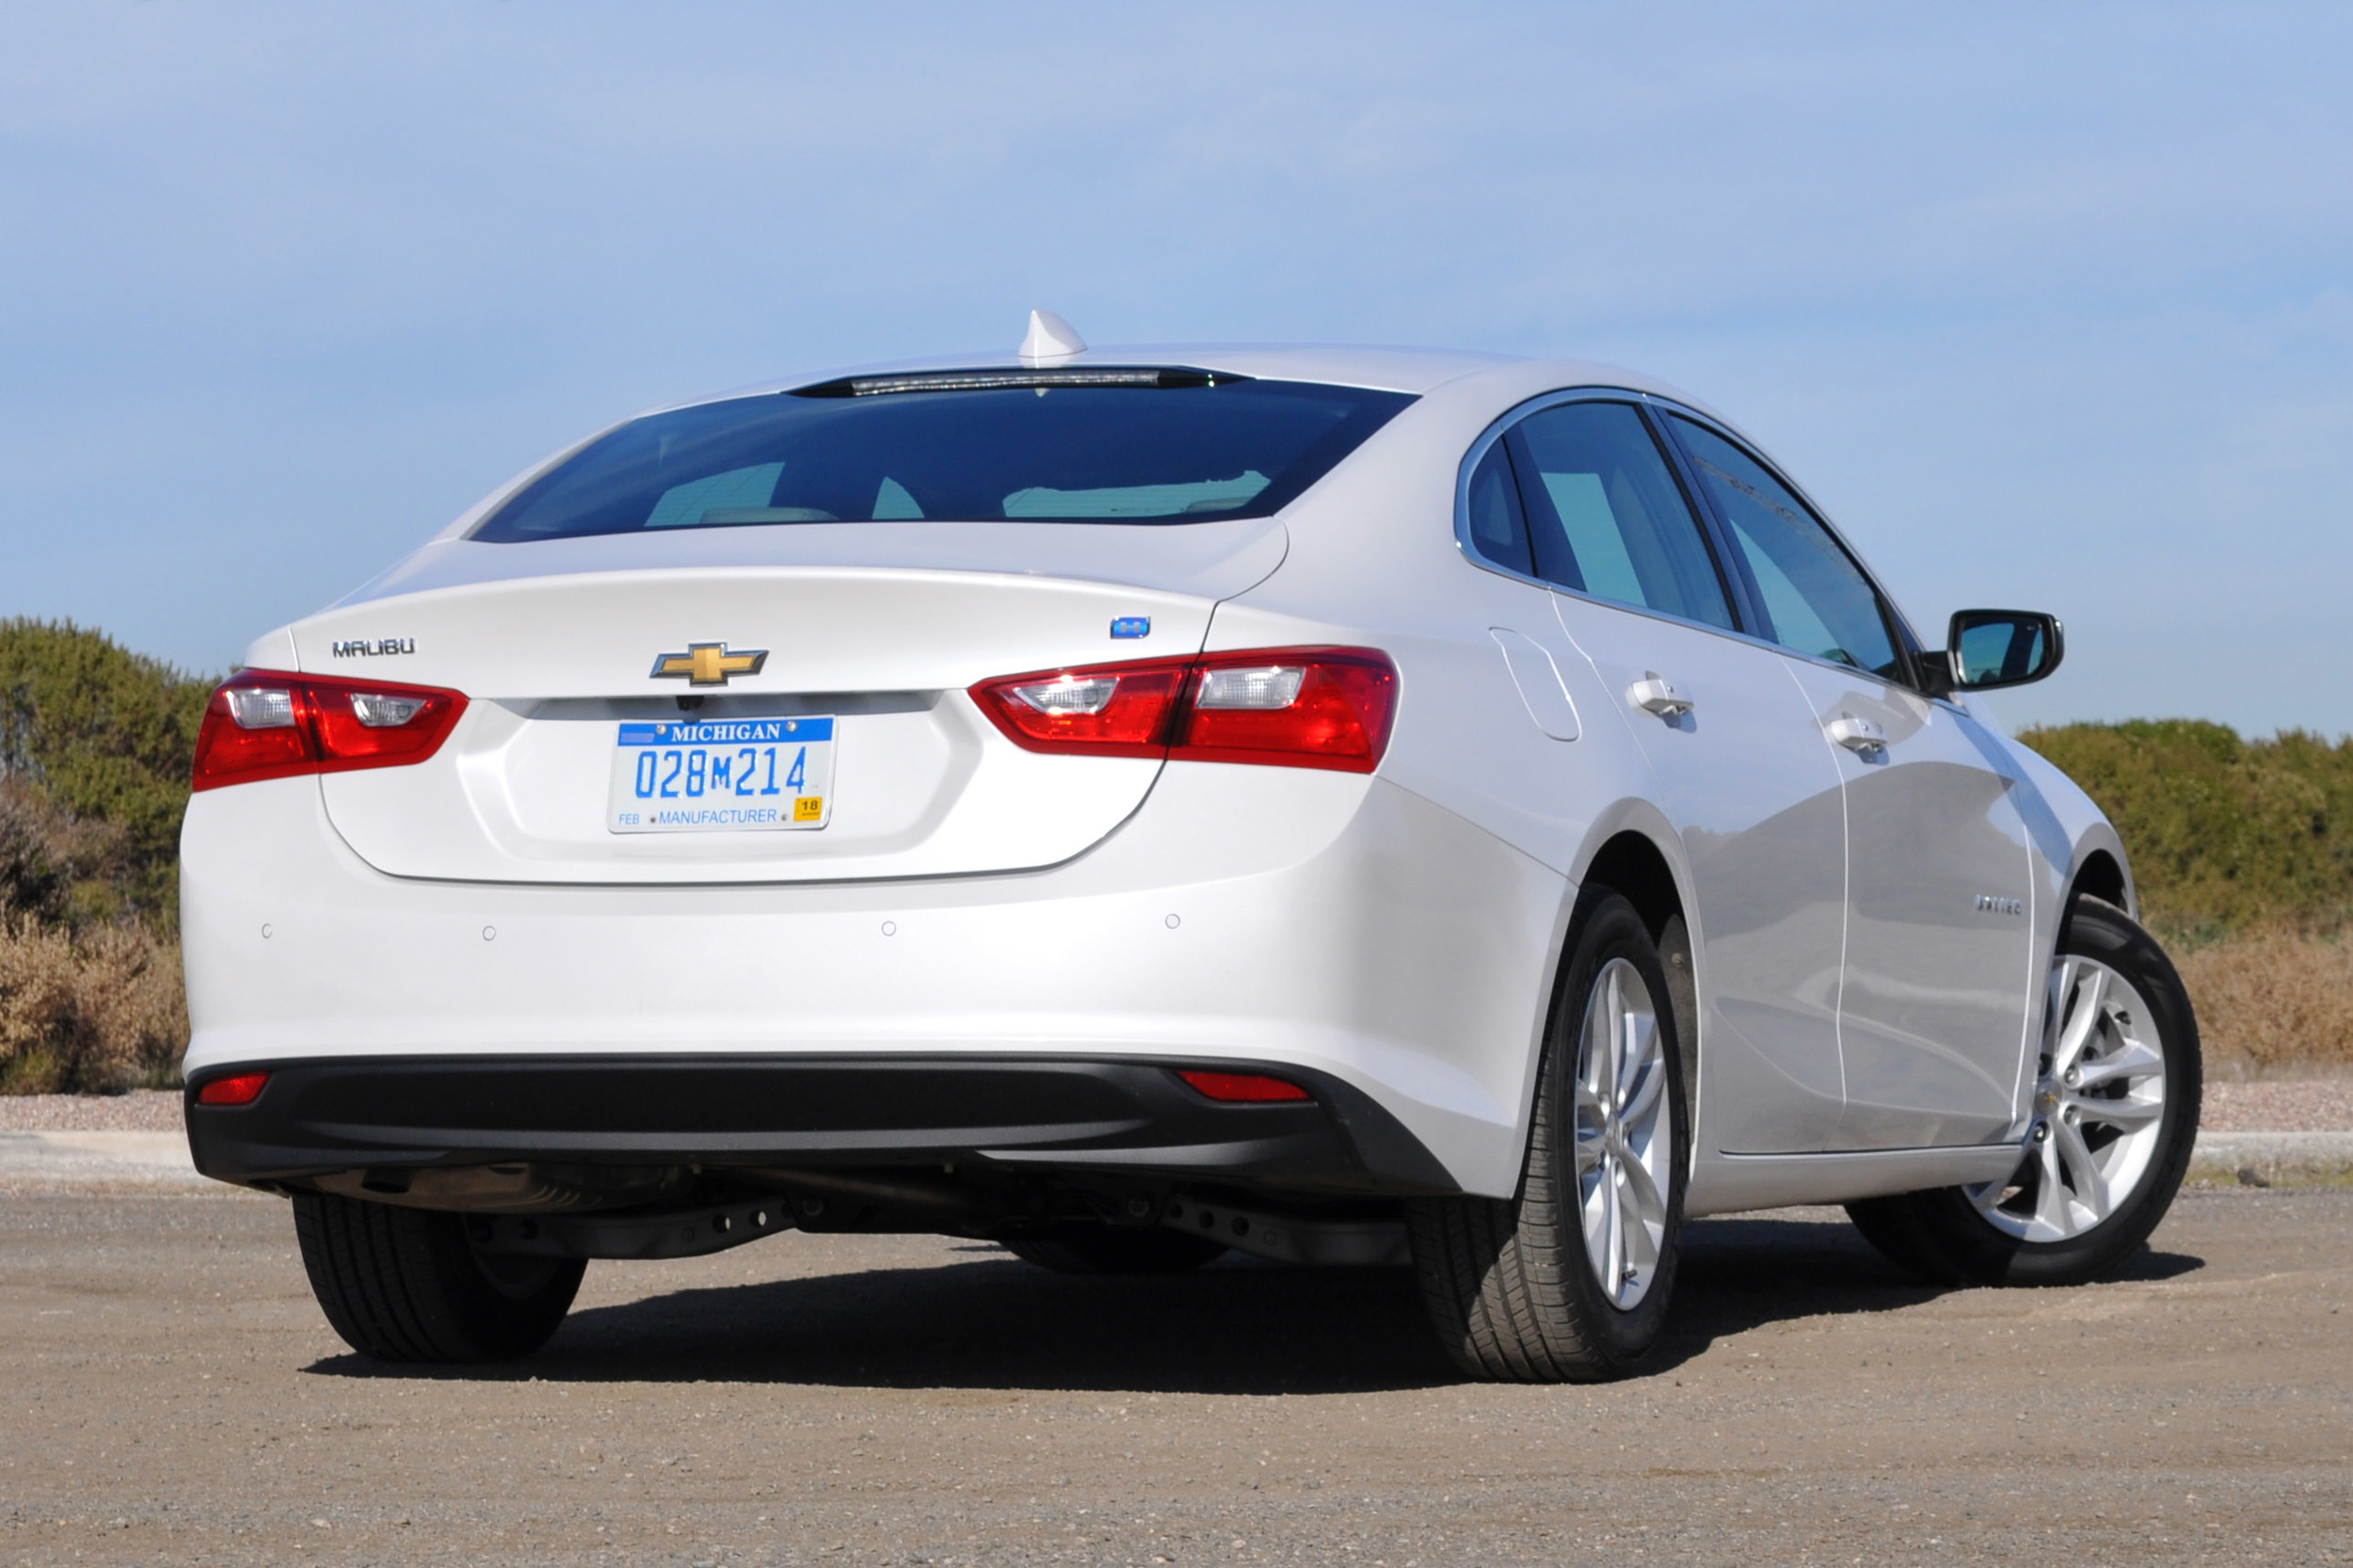 2016 Chevrolet Malibu Powered By ONE 1.8 Liter Engine And TWO Electric Motors 7